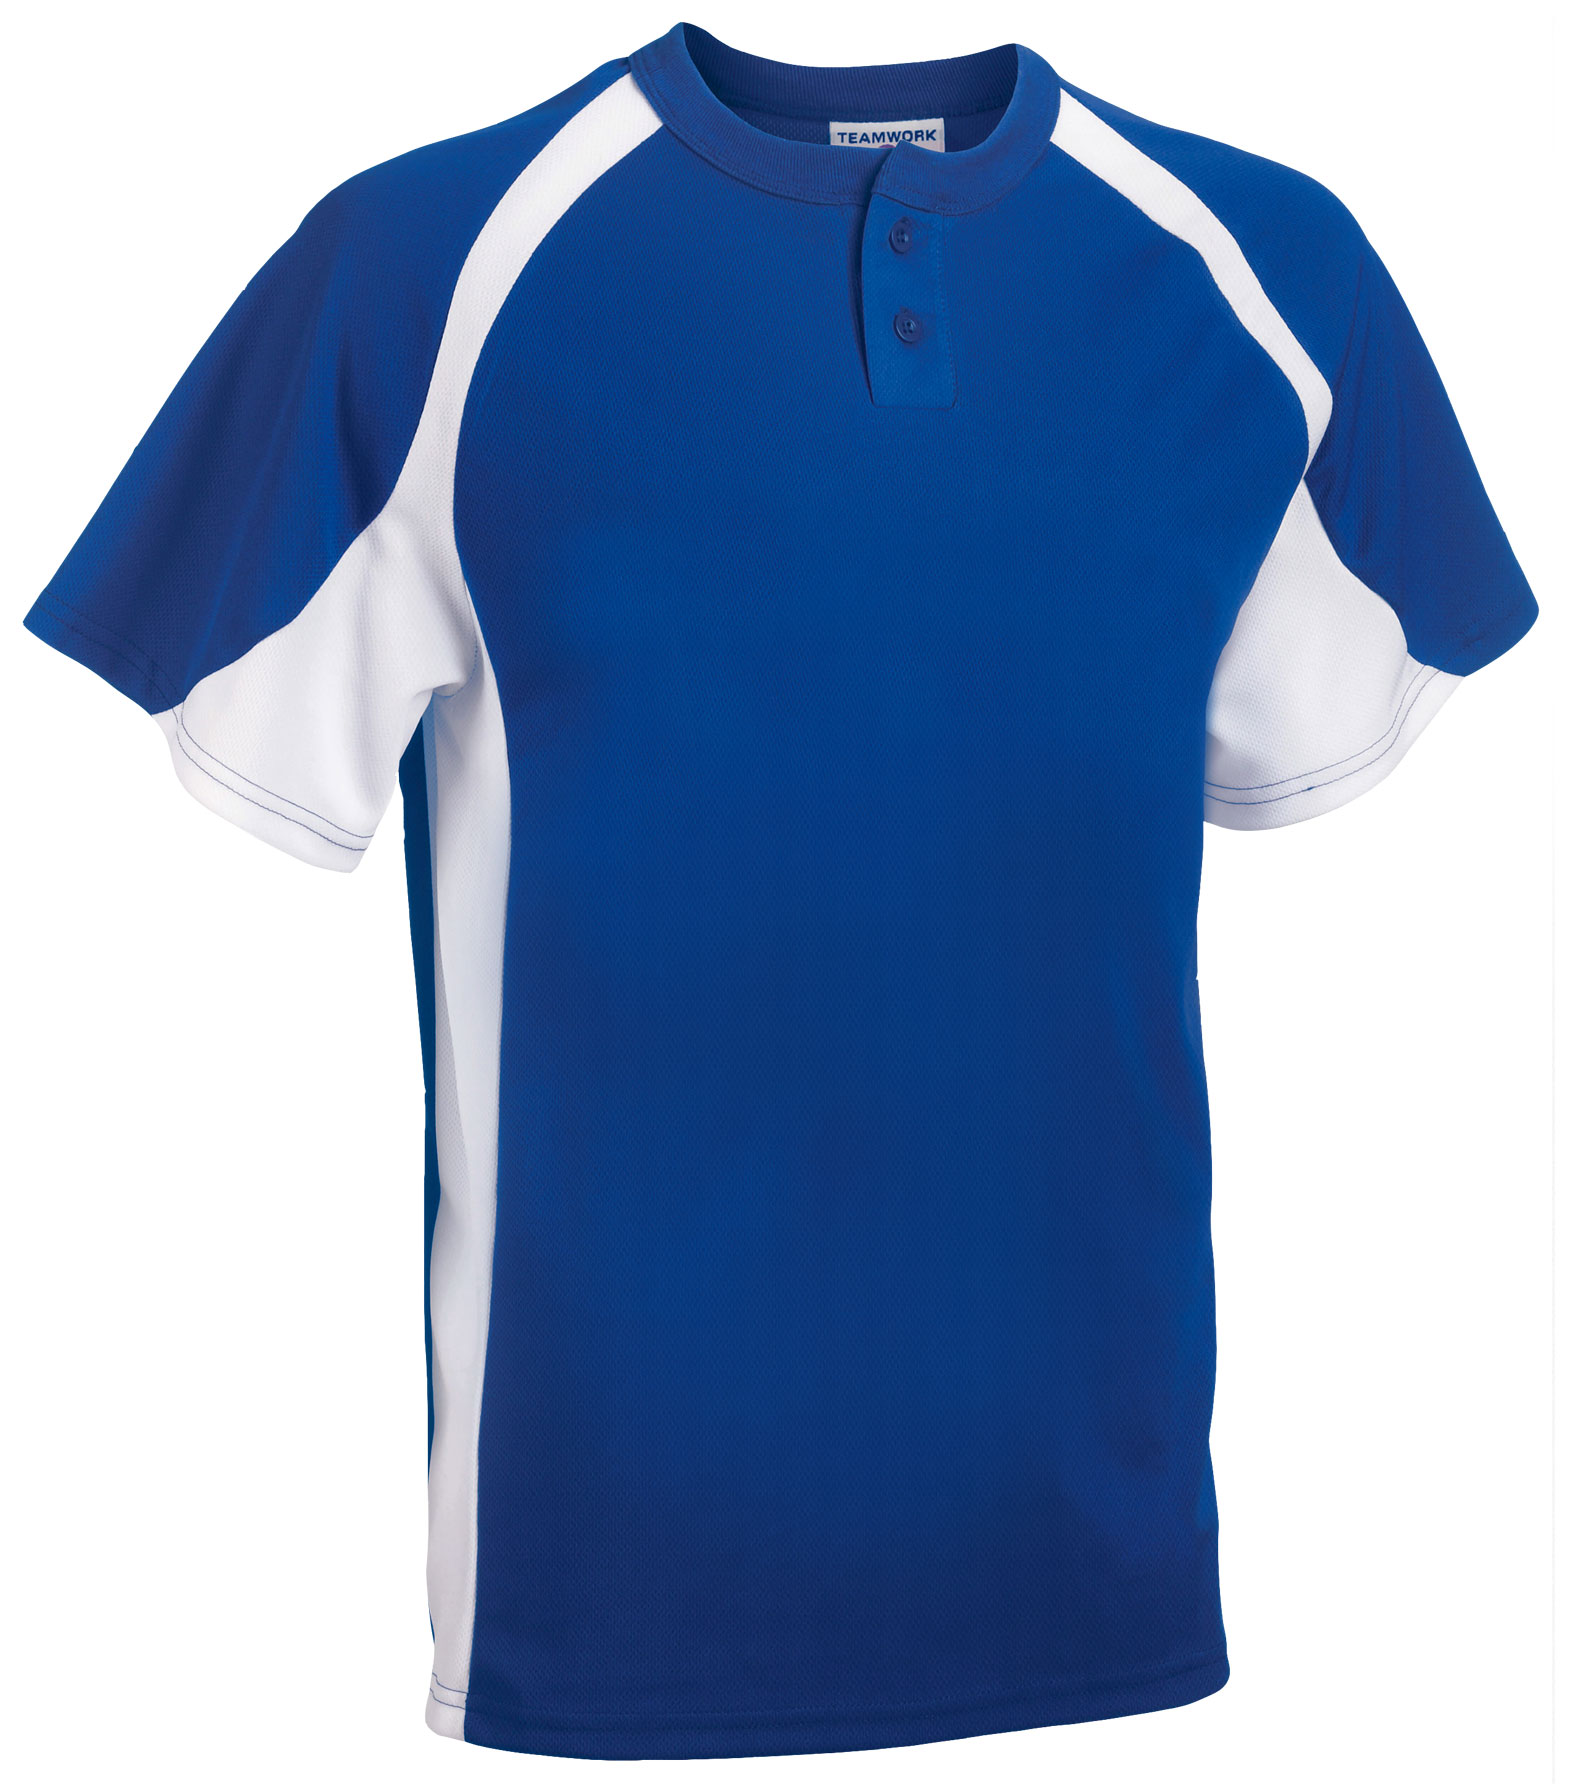 Teamwork Adult Line Drive 2-Button Baseball Jersey - CLOSEOUT